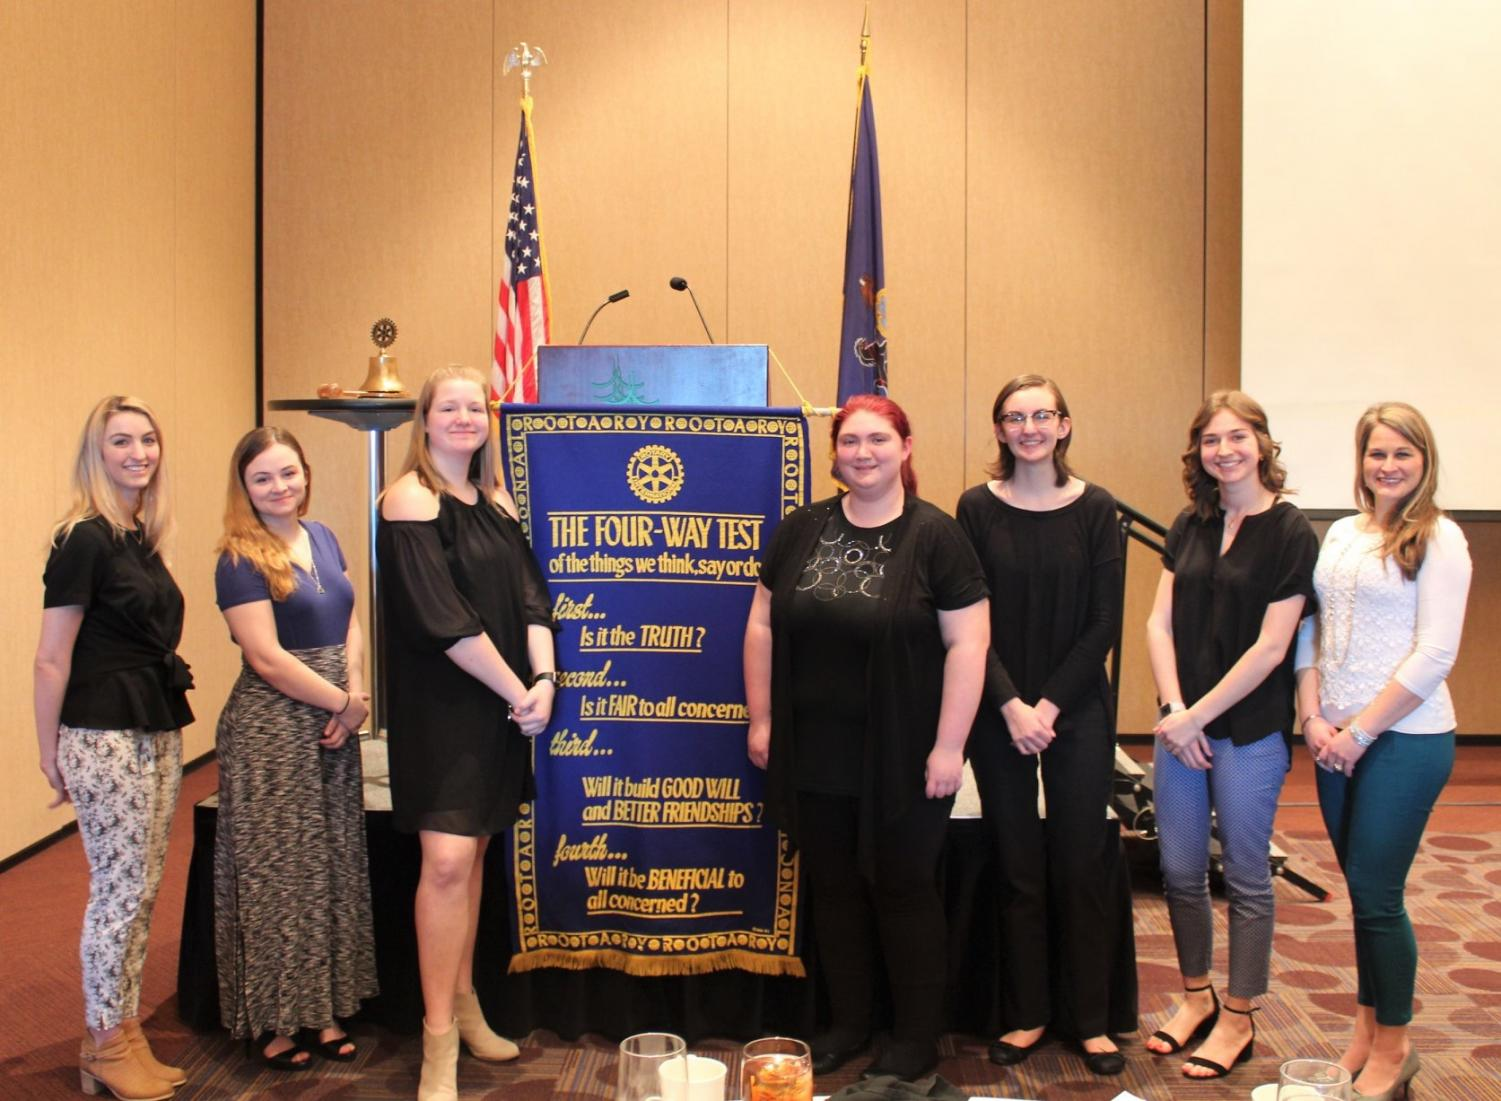 Heather Tippett-Wertz along with the five competitors and student teacher, Carly Schankowitz stand for a picture at the end of the contest.  Also pictured is the list of 4-Way tests that gave directions and set a foundations for addressing the topics presented.